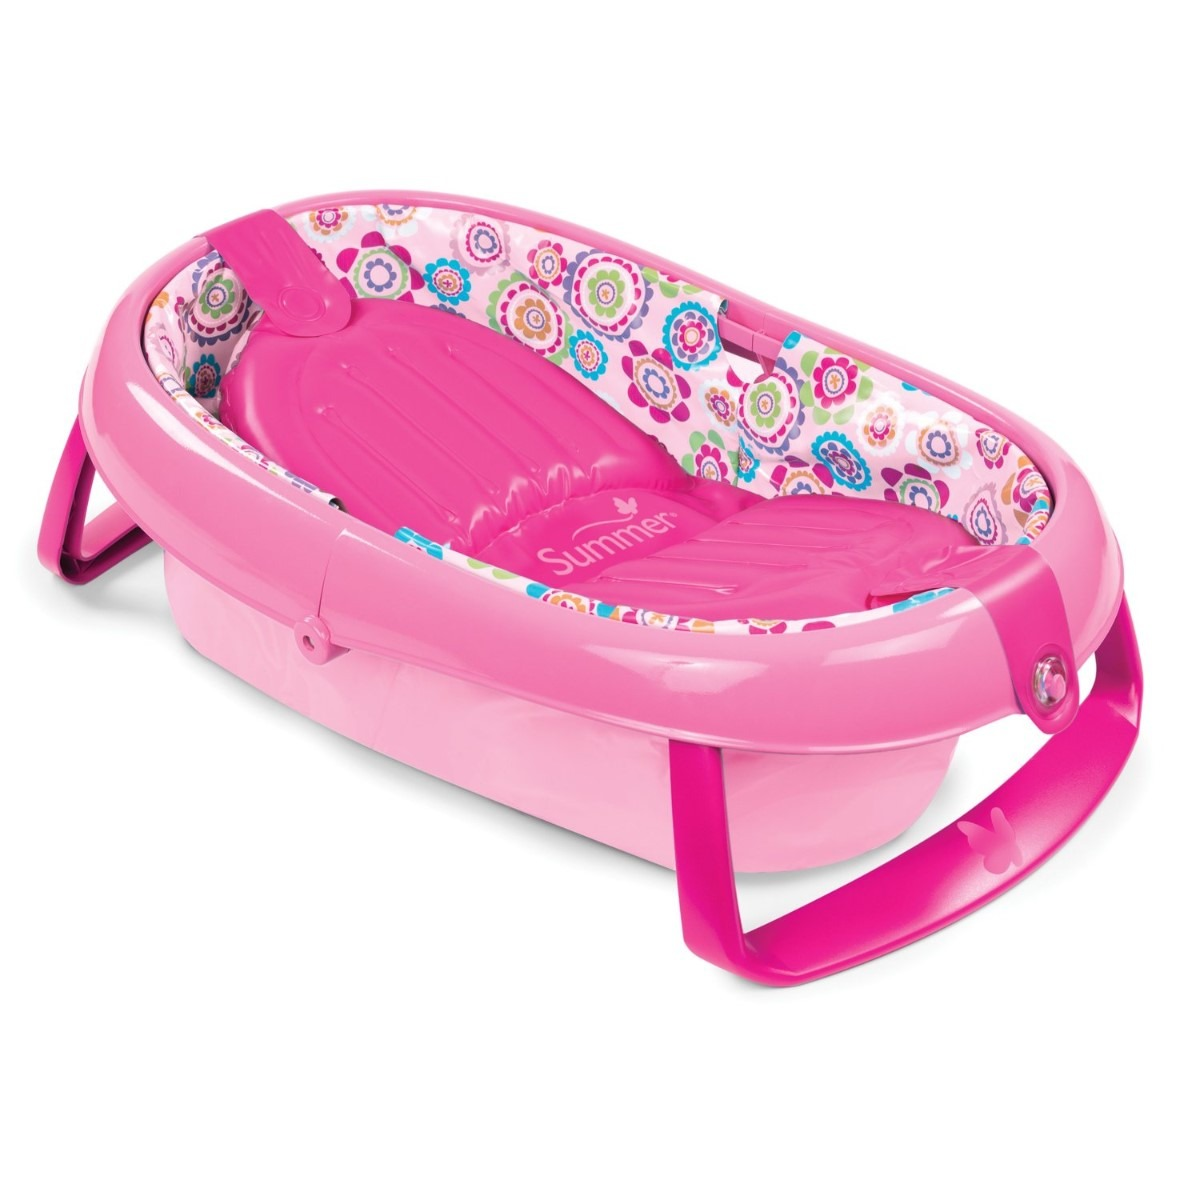 banera summer infant plegable para bebe respaldo inflable